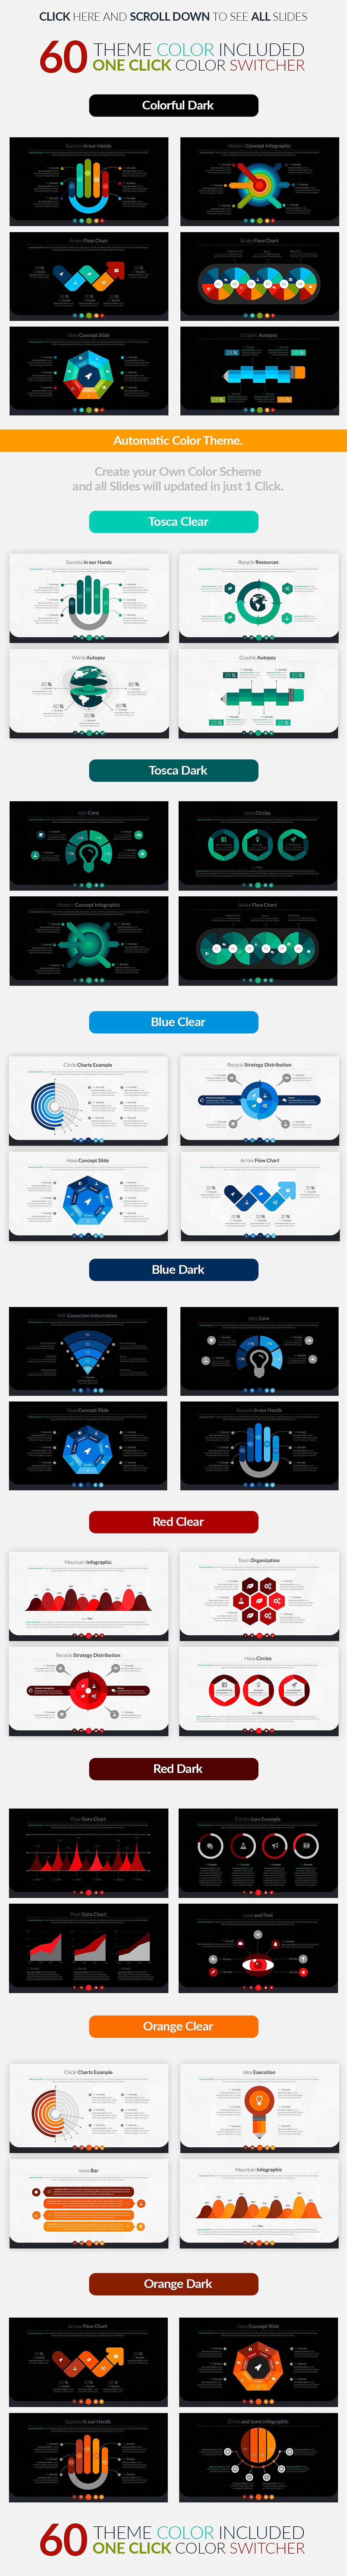 20 Powerpoint Templates with 81% OFF - Deal Finder 03